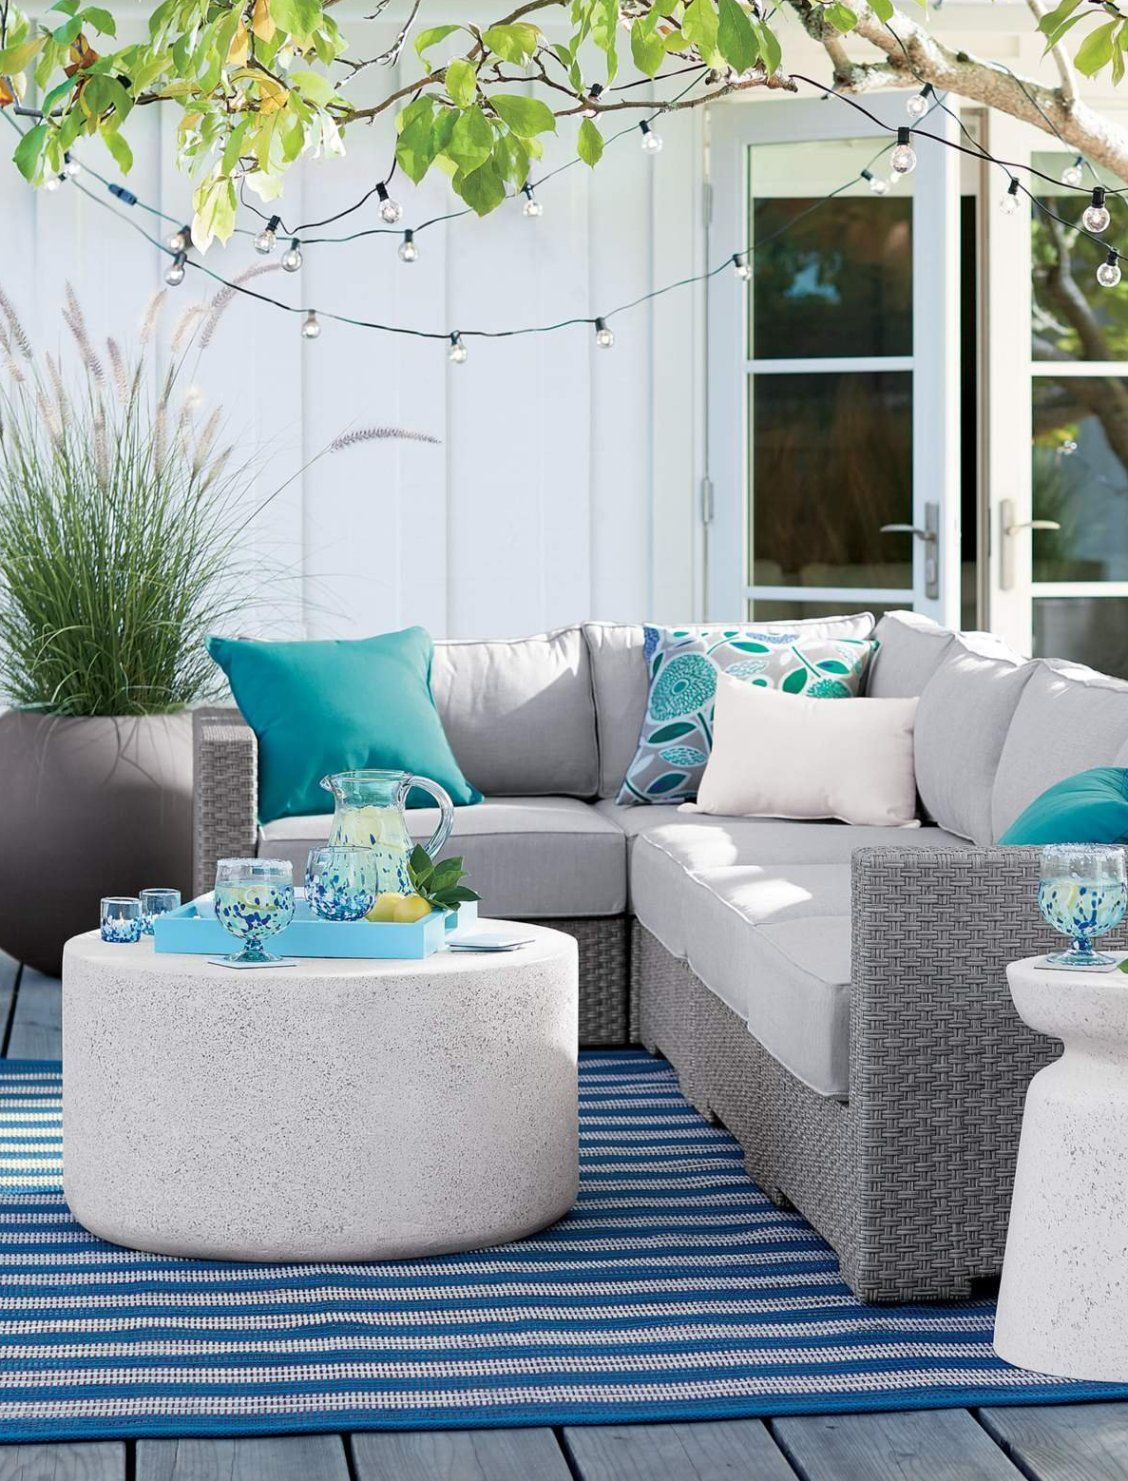 Outdoor Furniture Collections Dining And Lounge Crate And Barrel Outdoor Furniture Collections Outdoor Dining Furniture Outdoor Patio Space